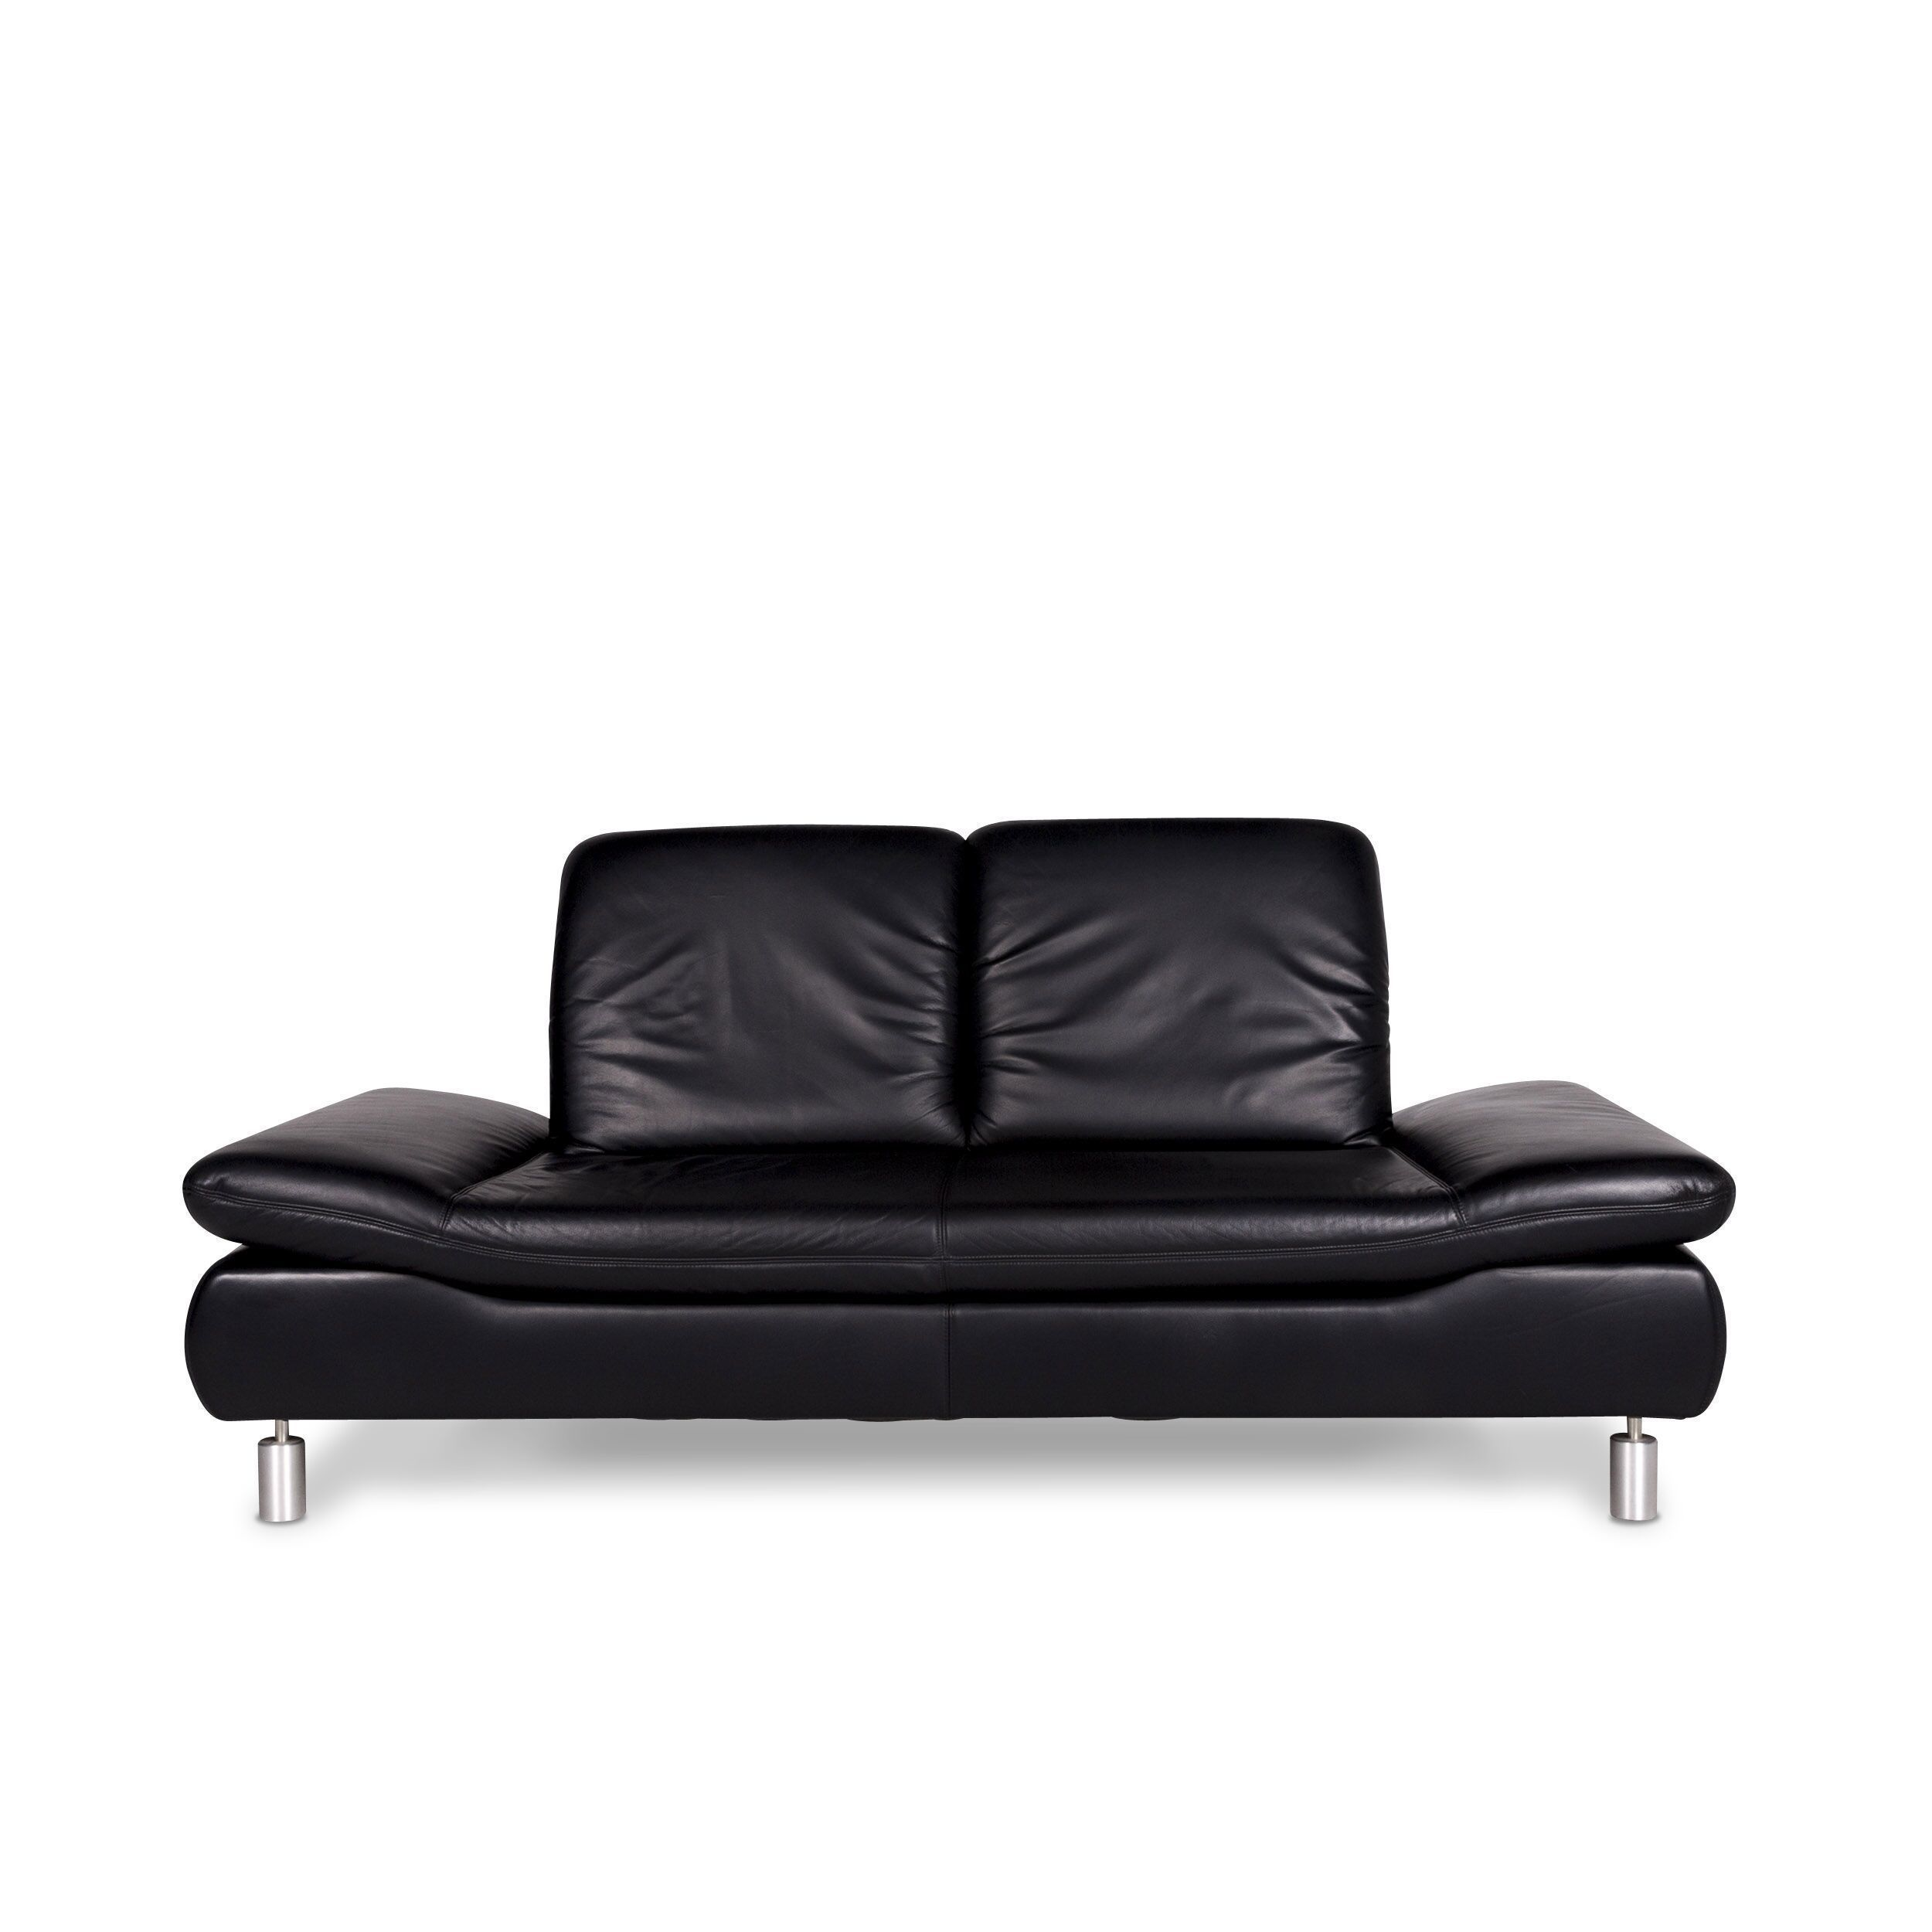 Quotes On Sofa Koinor Rivoli Designer Leather Sofa Black Two Seater Couch 9667